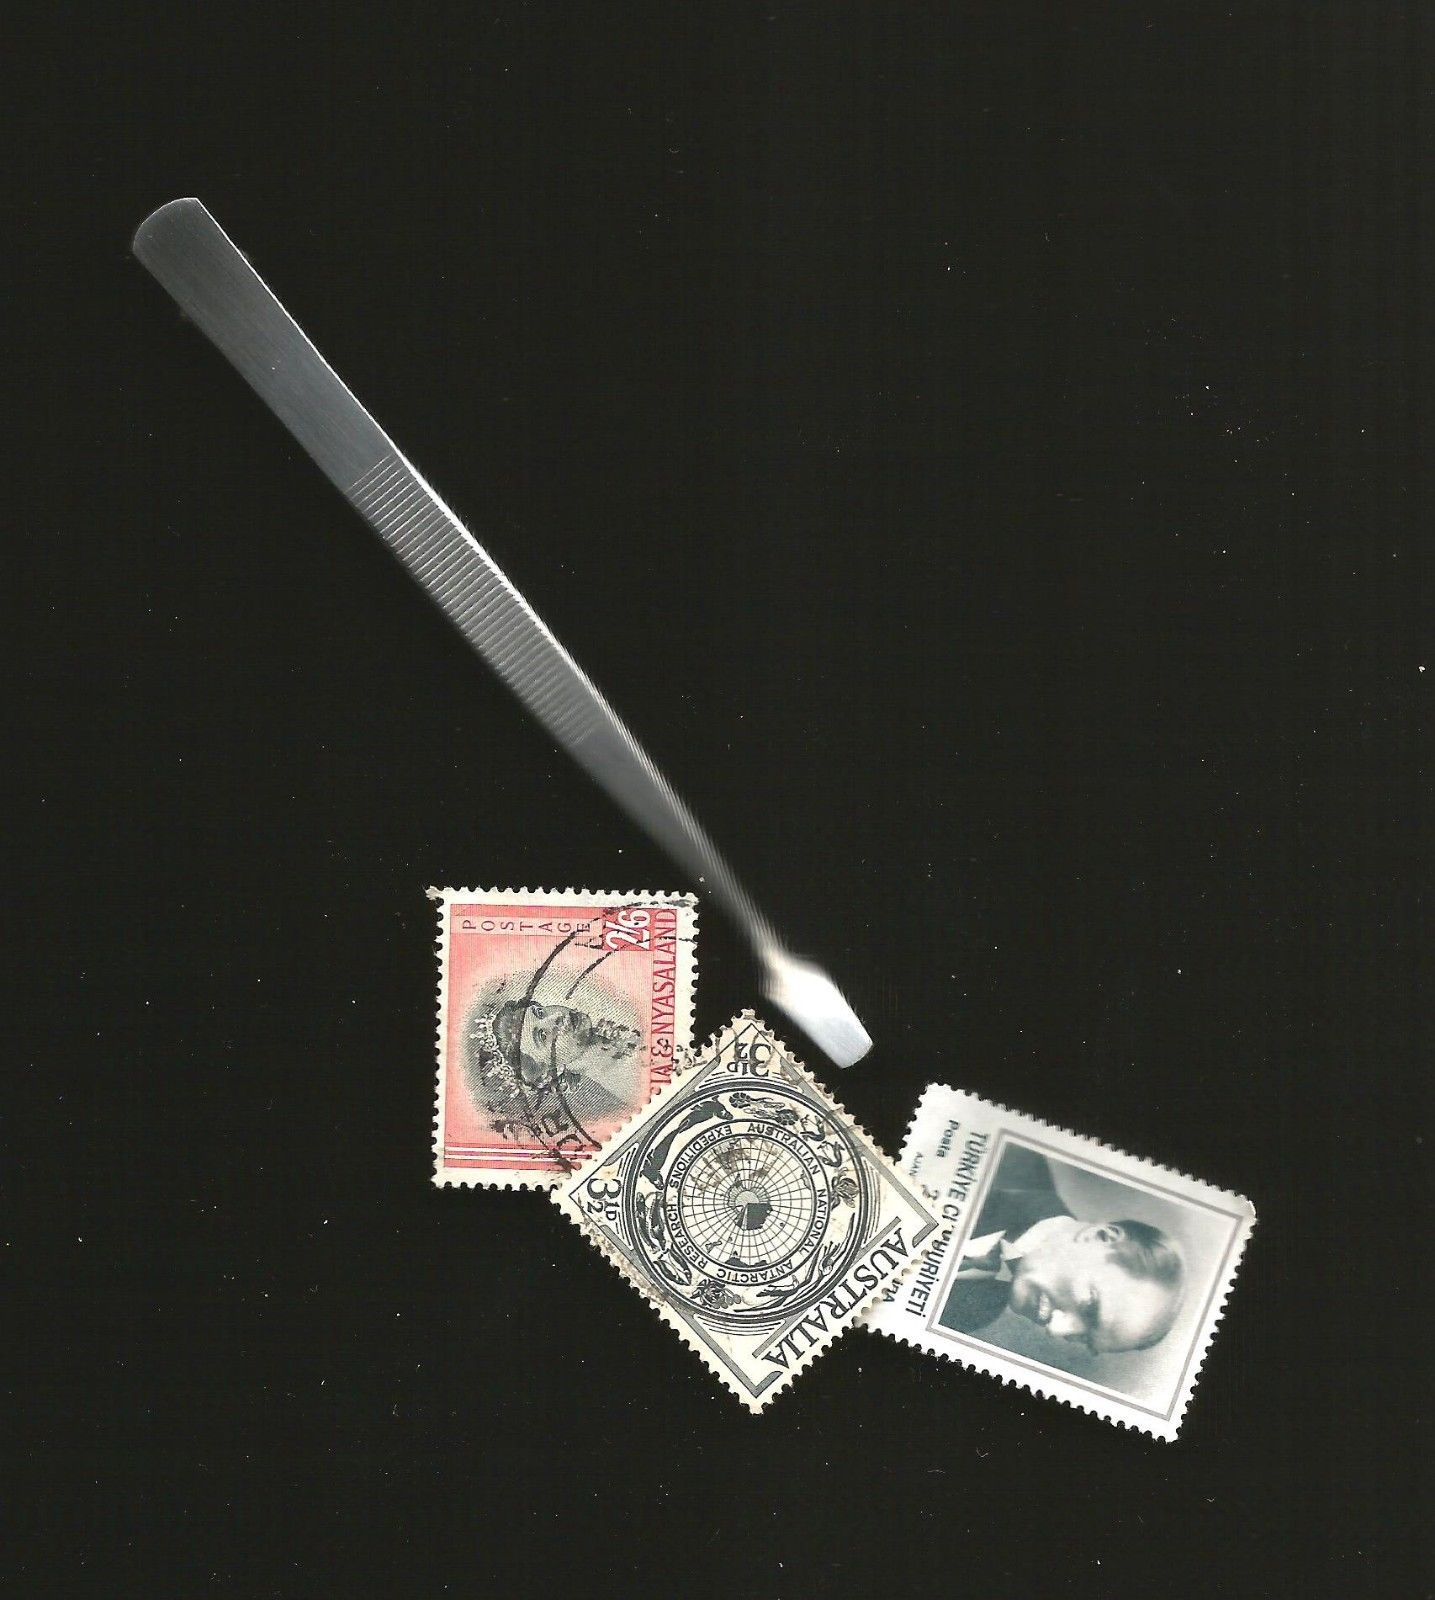 """WORLDPOSTAGESTAMPS"" BRAND PHILATELIC TWEEZERS SPADE END STAINLE"